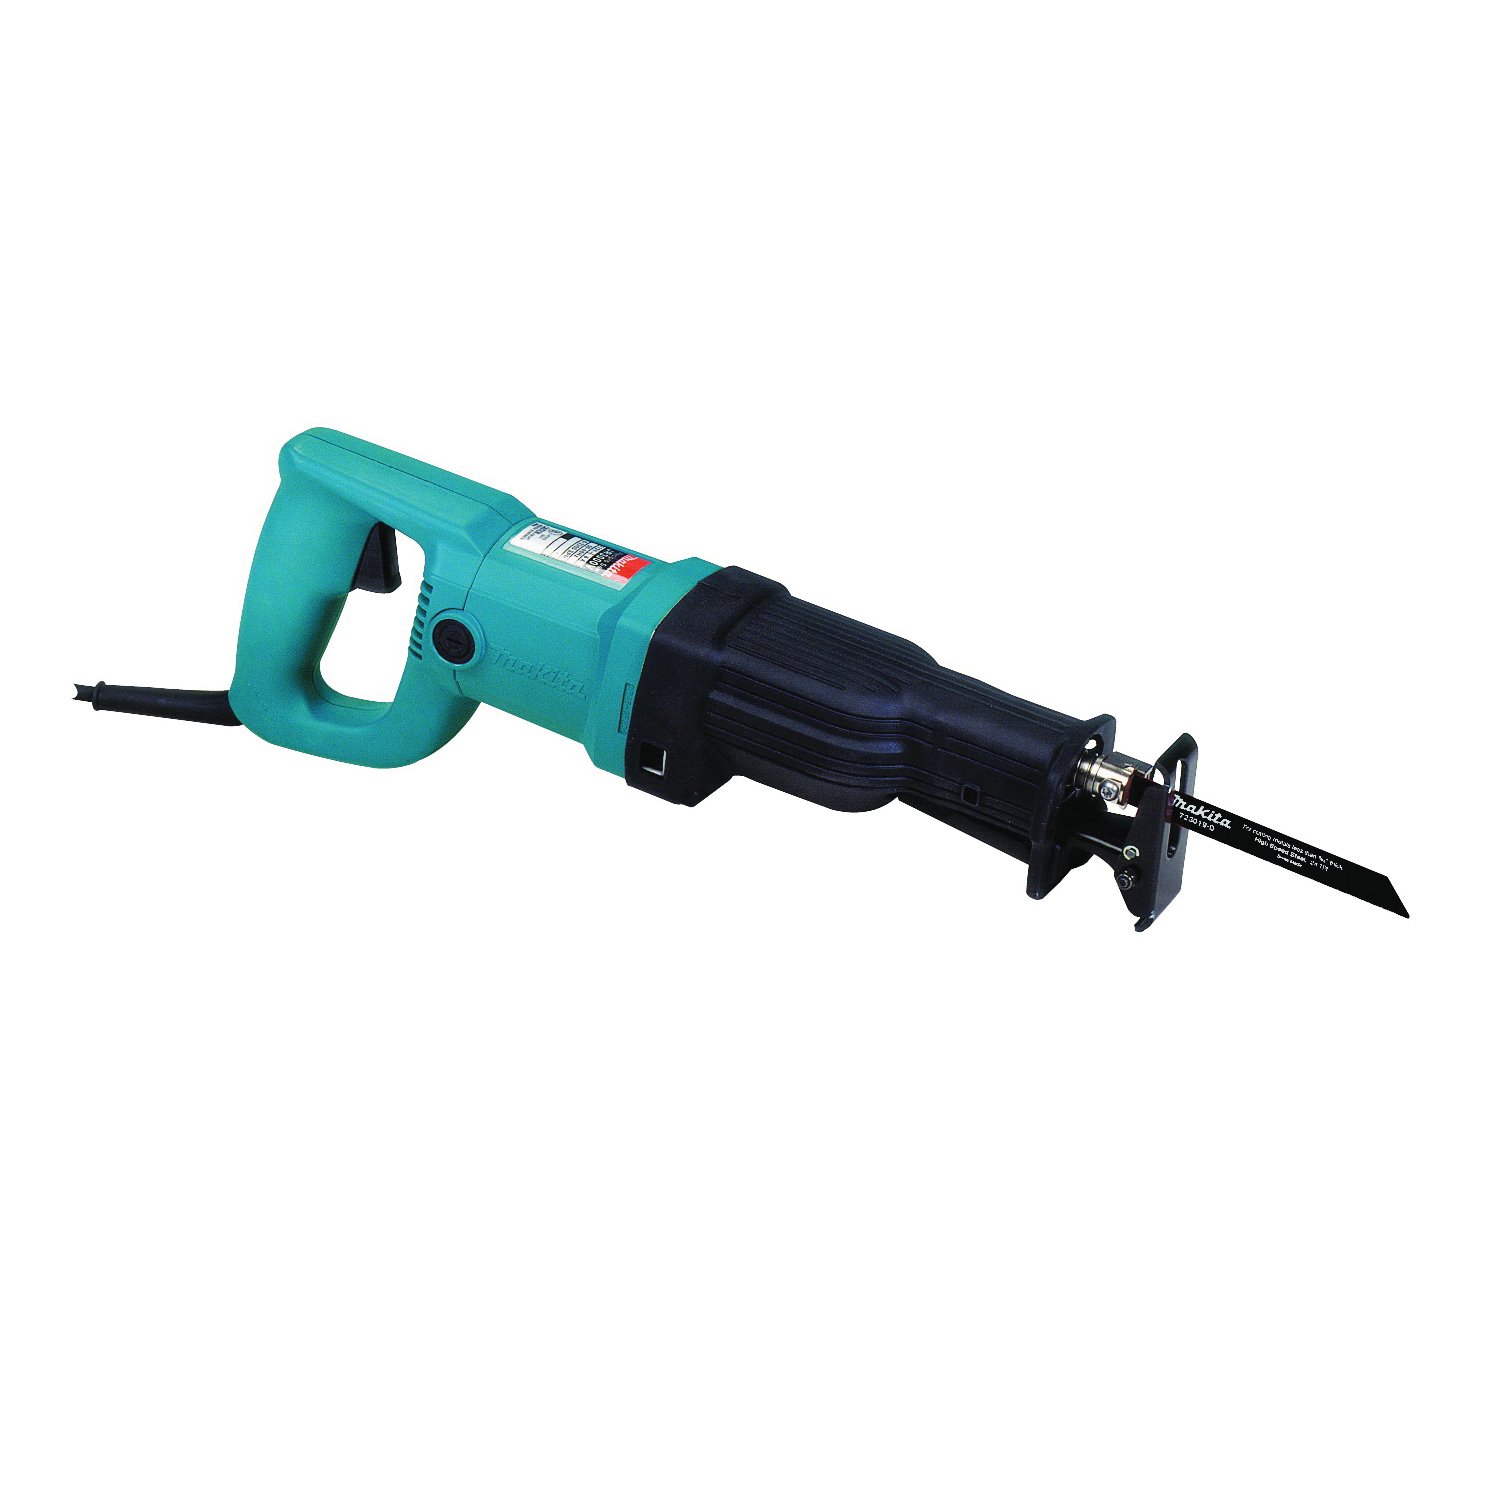 Picture of Makita JR3050T Reciprocating Saw, 120 V, 9 A, 5-1/8 to 10 in Cutting Capacity, 1-1/8 in L Stroke, 2800 spm SPM